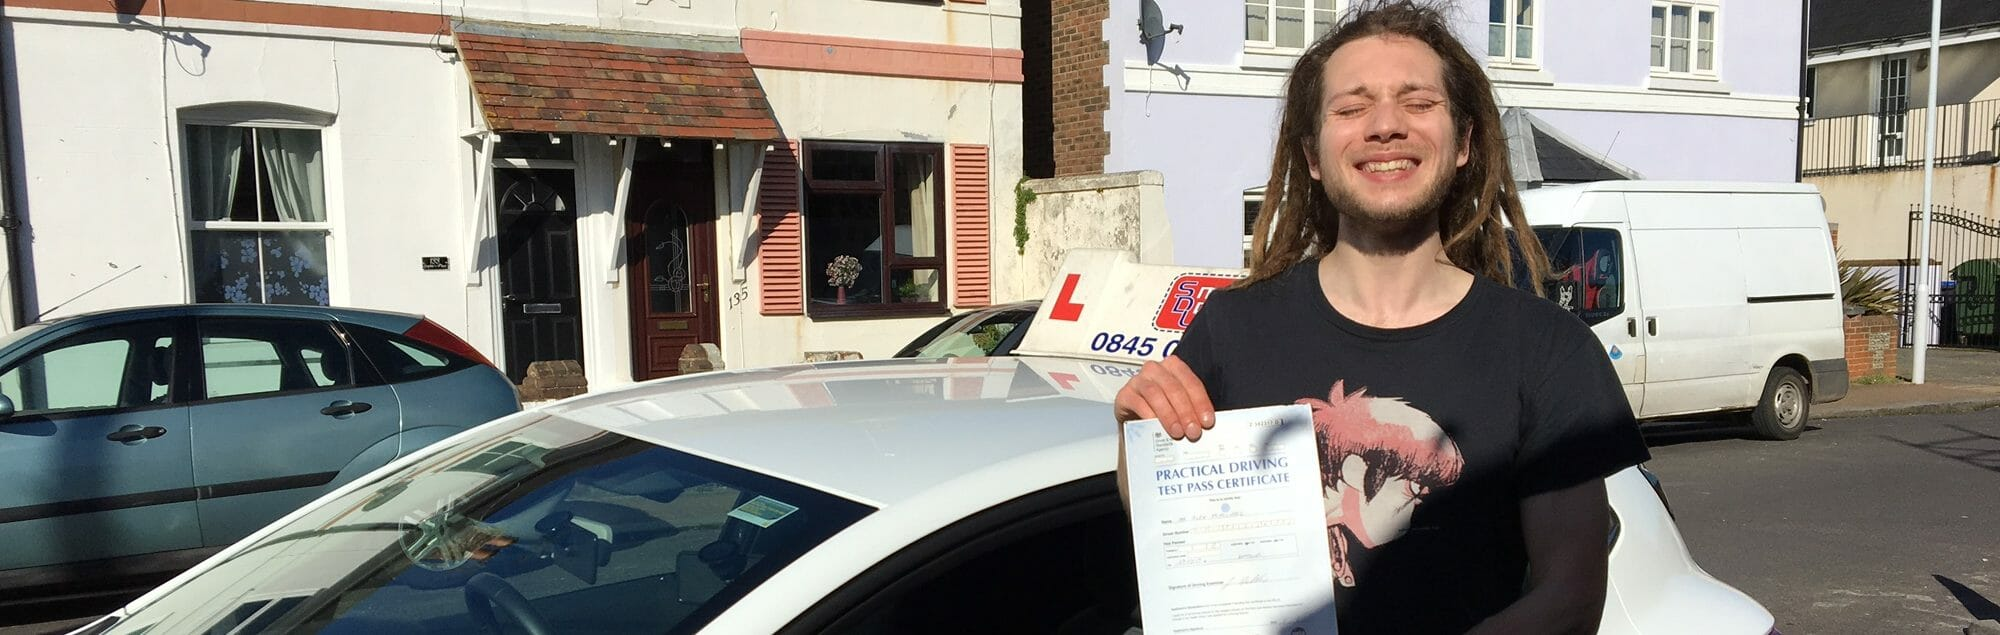 Zero Faults!! Congratulations to Alex of Worthing